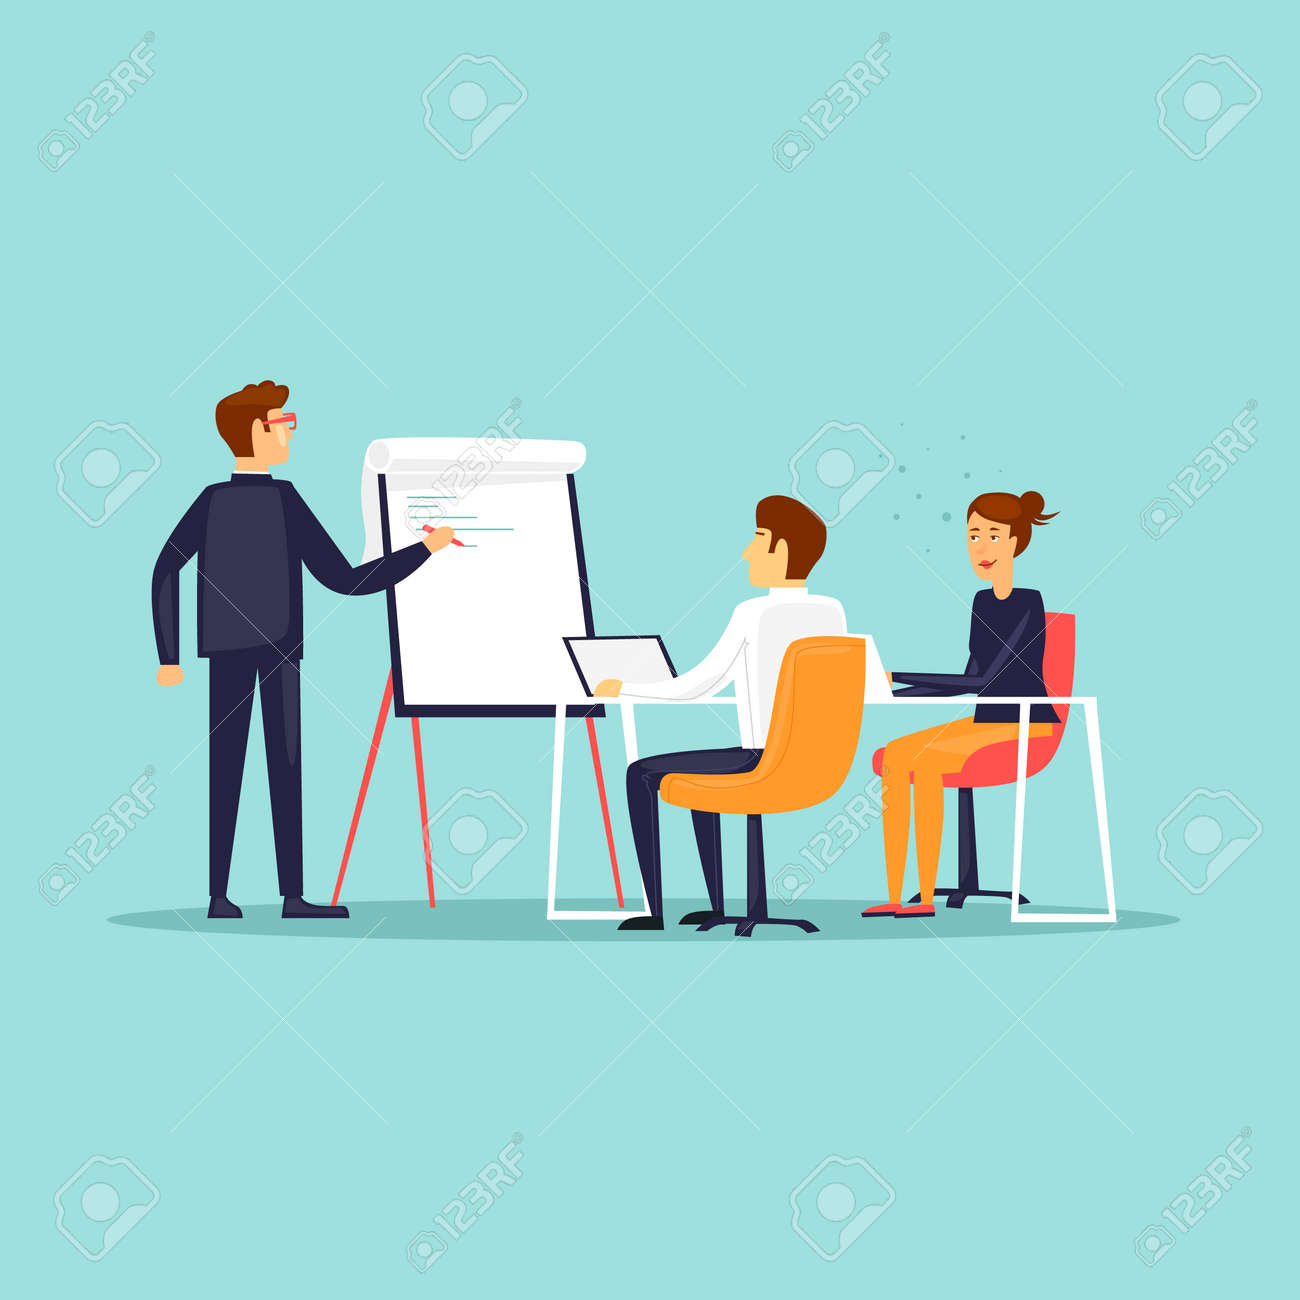 Business training or office meeting flat design vector illustration. - 100084303